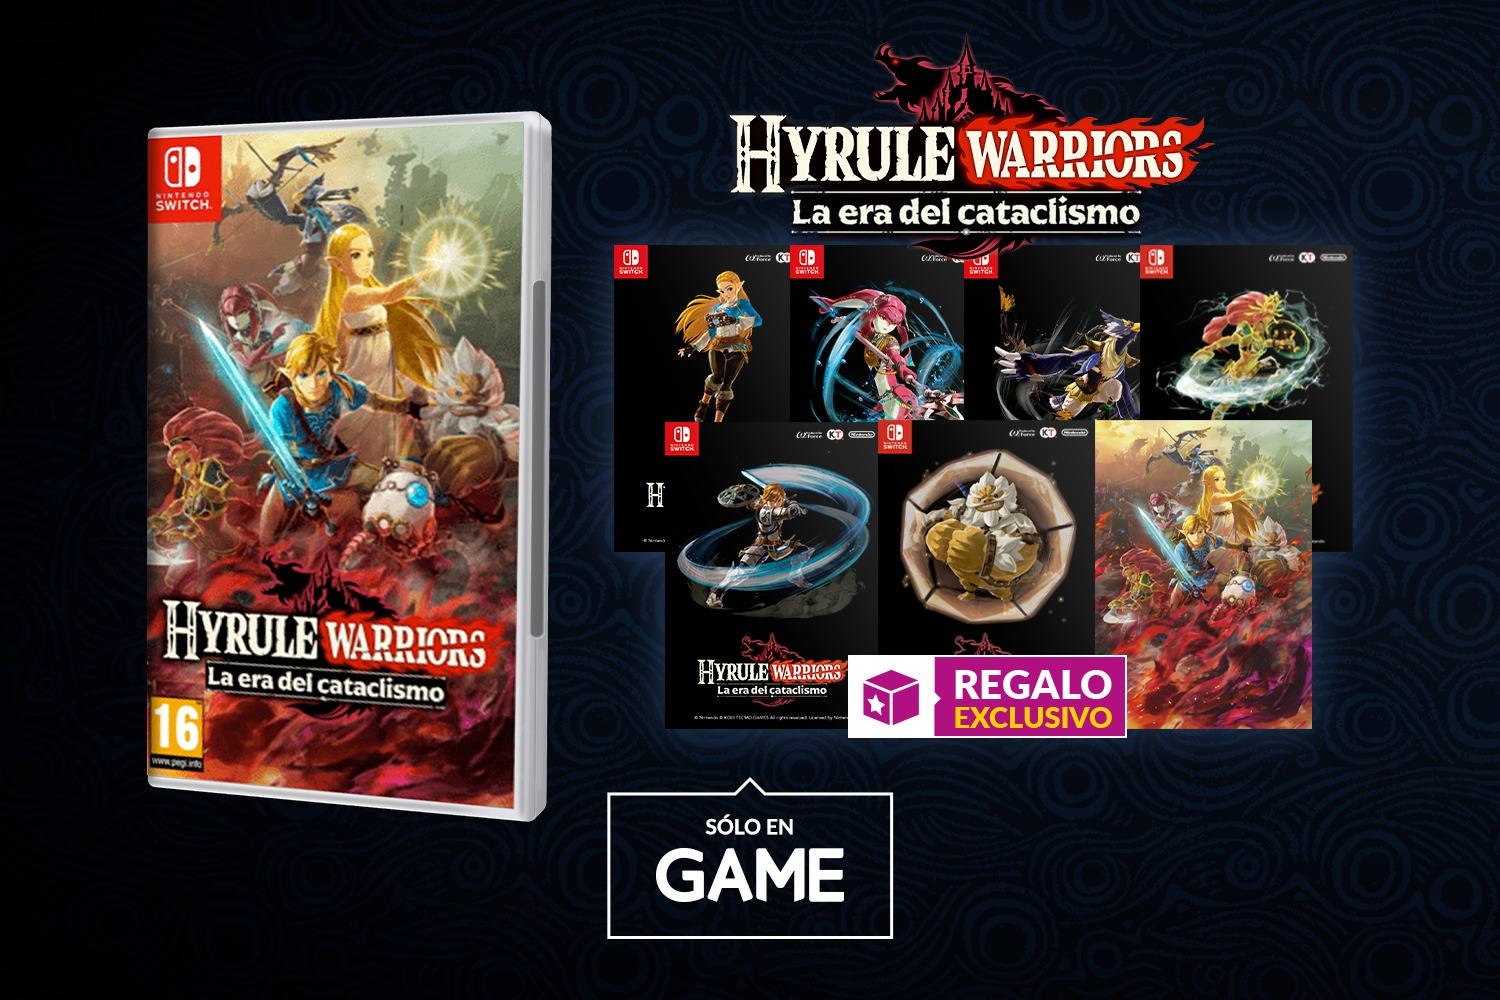 Hazte Con Una Coleccion De Tarjetas De Hyrule Warriors La Era Del Cataclismo En Game Powerups